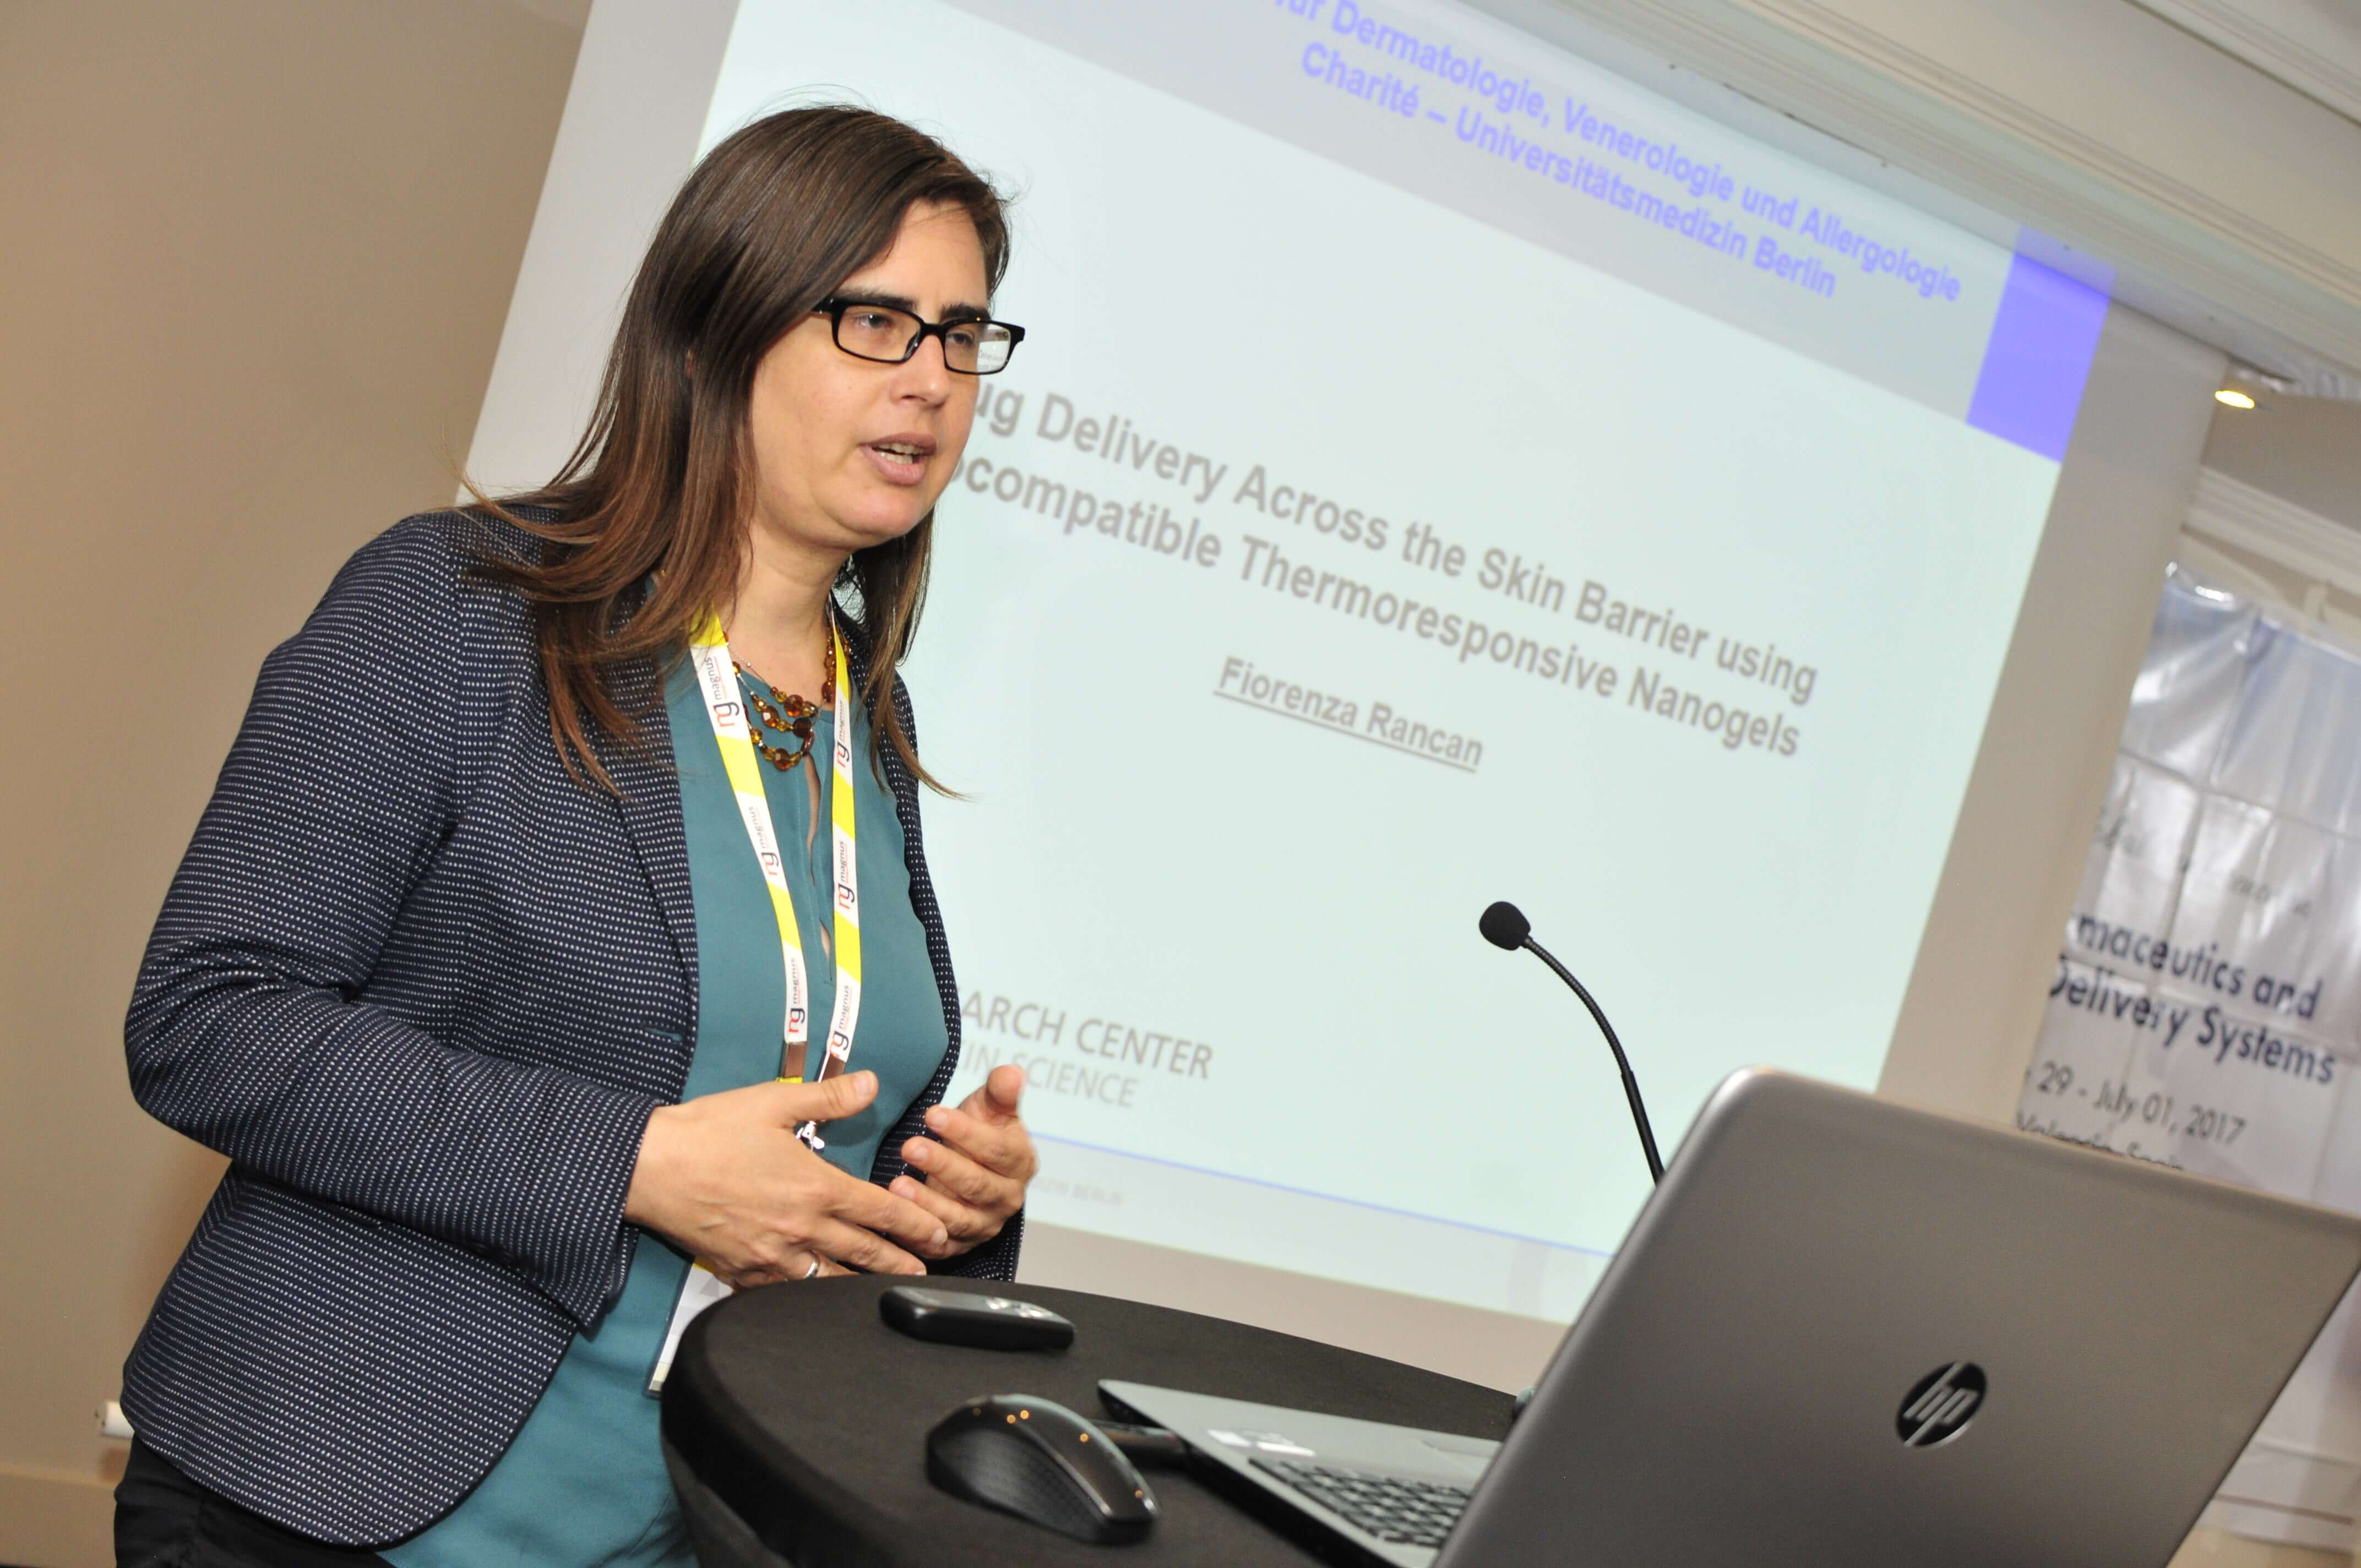 Speaker for Biotechnology conferences 2020-Fiorenza Rancan Charite